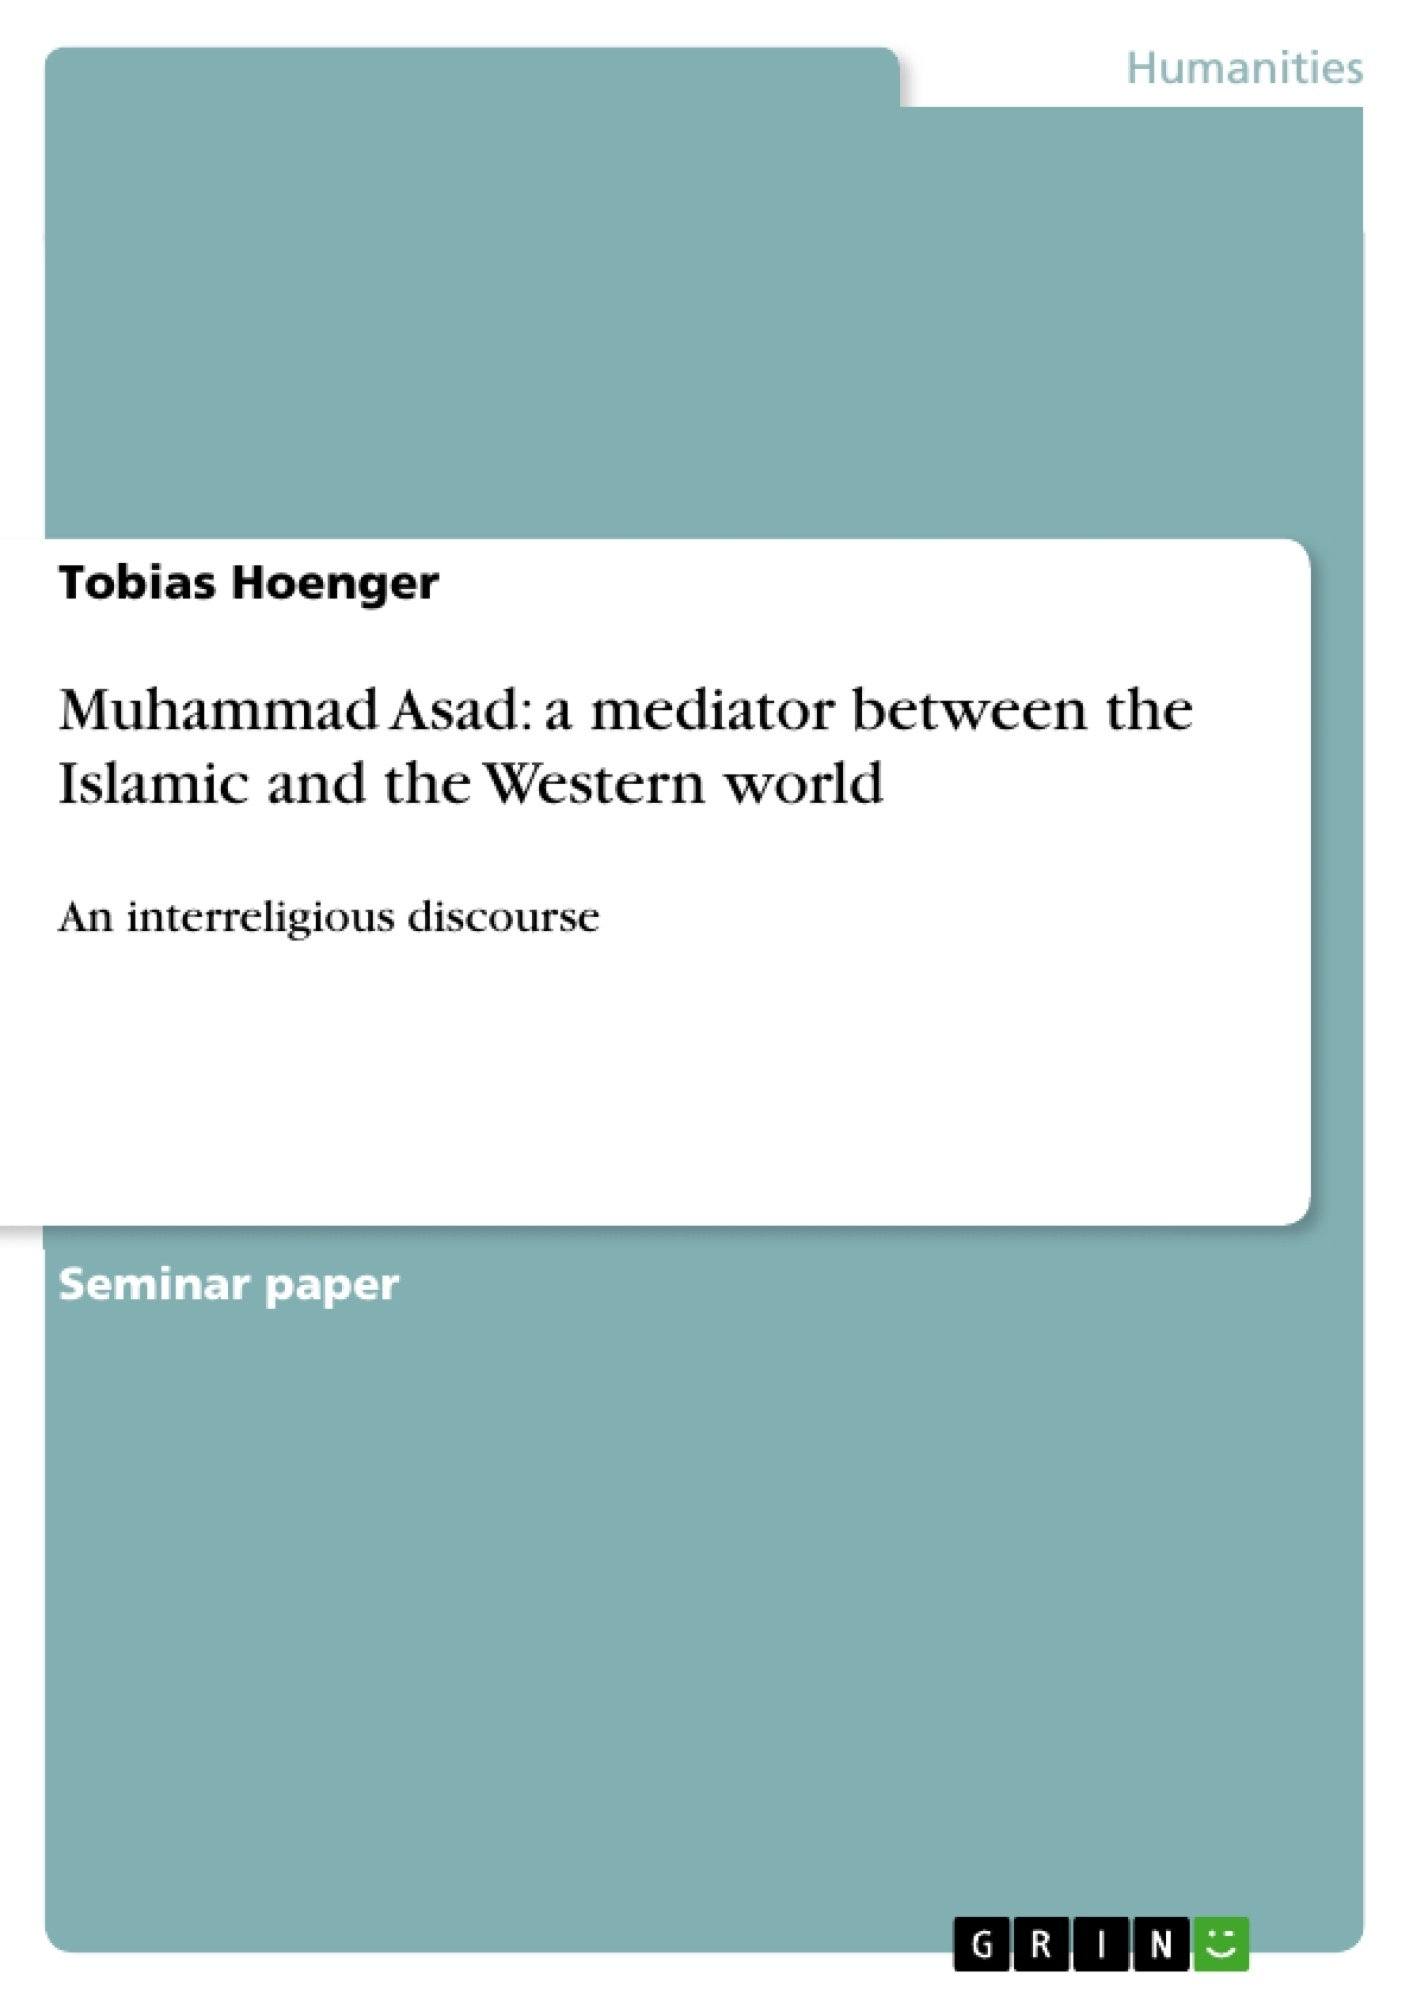 Title: Muhammad Asad: a mediator between the Islamic and the Western world